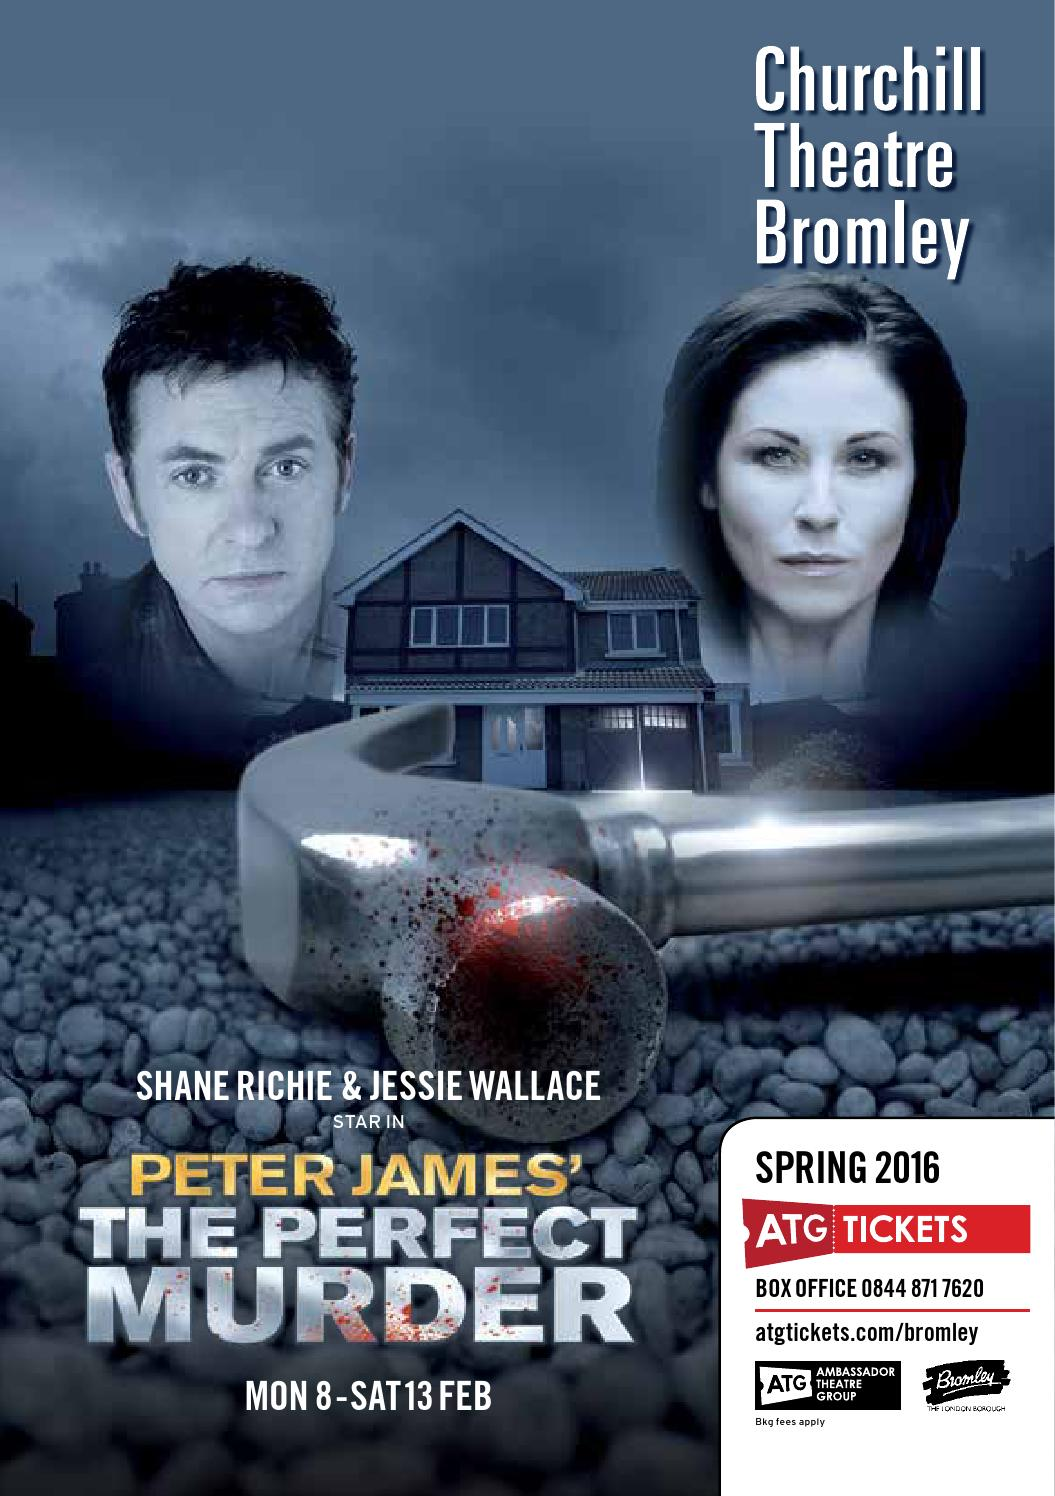 Churchill Theatre Bromley brochure Spring 2016 by ATG